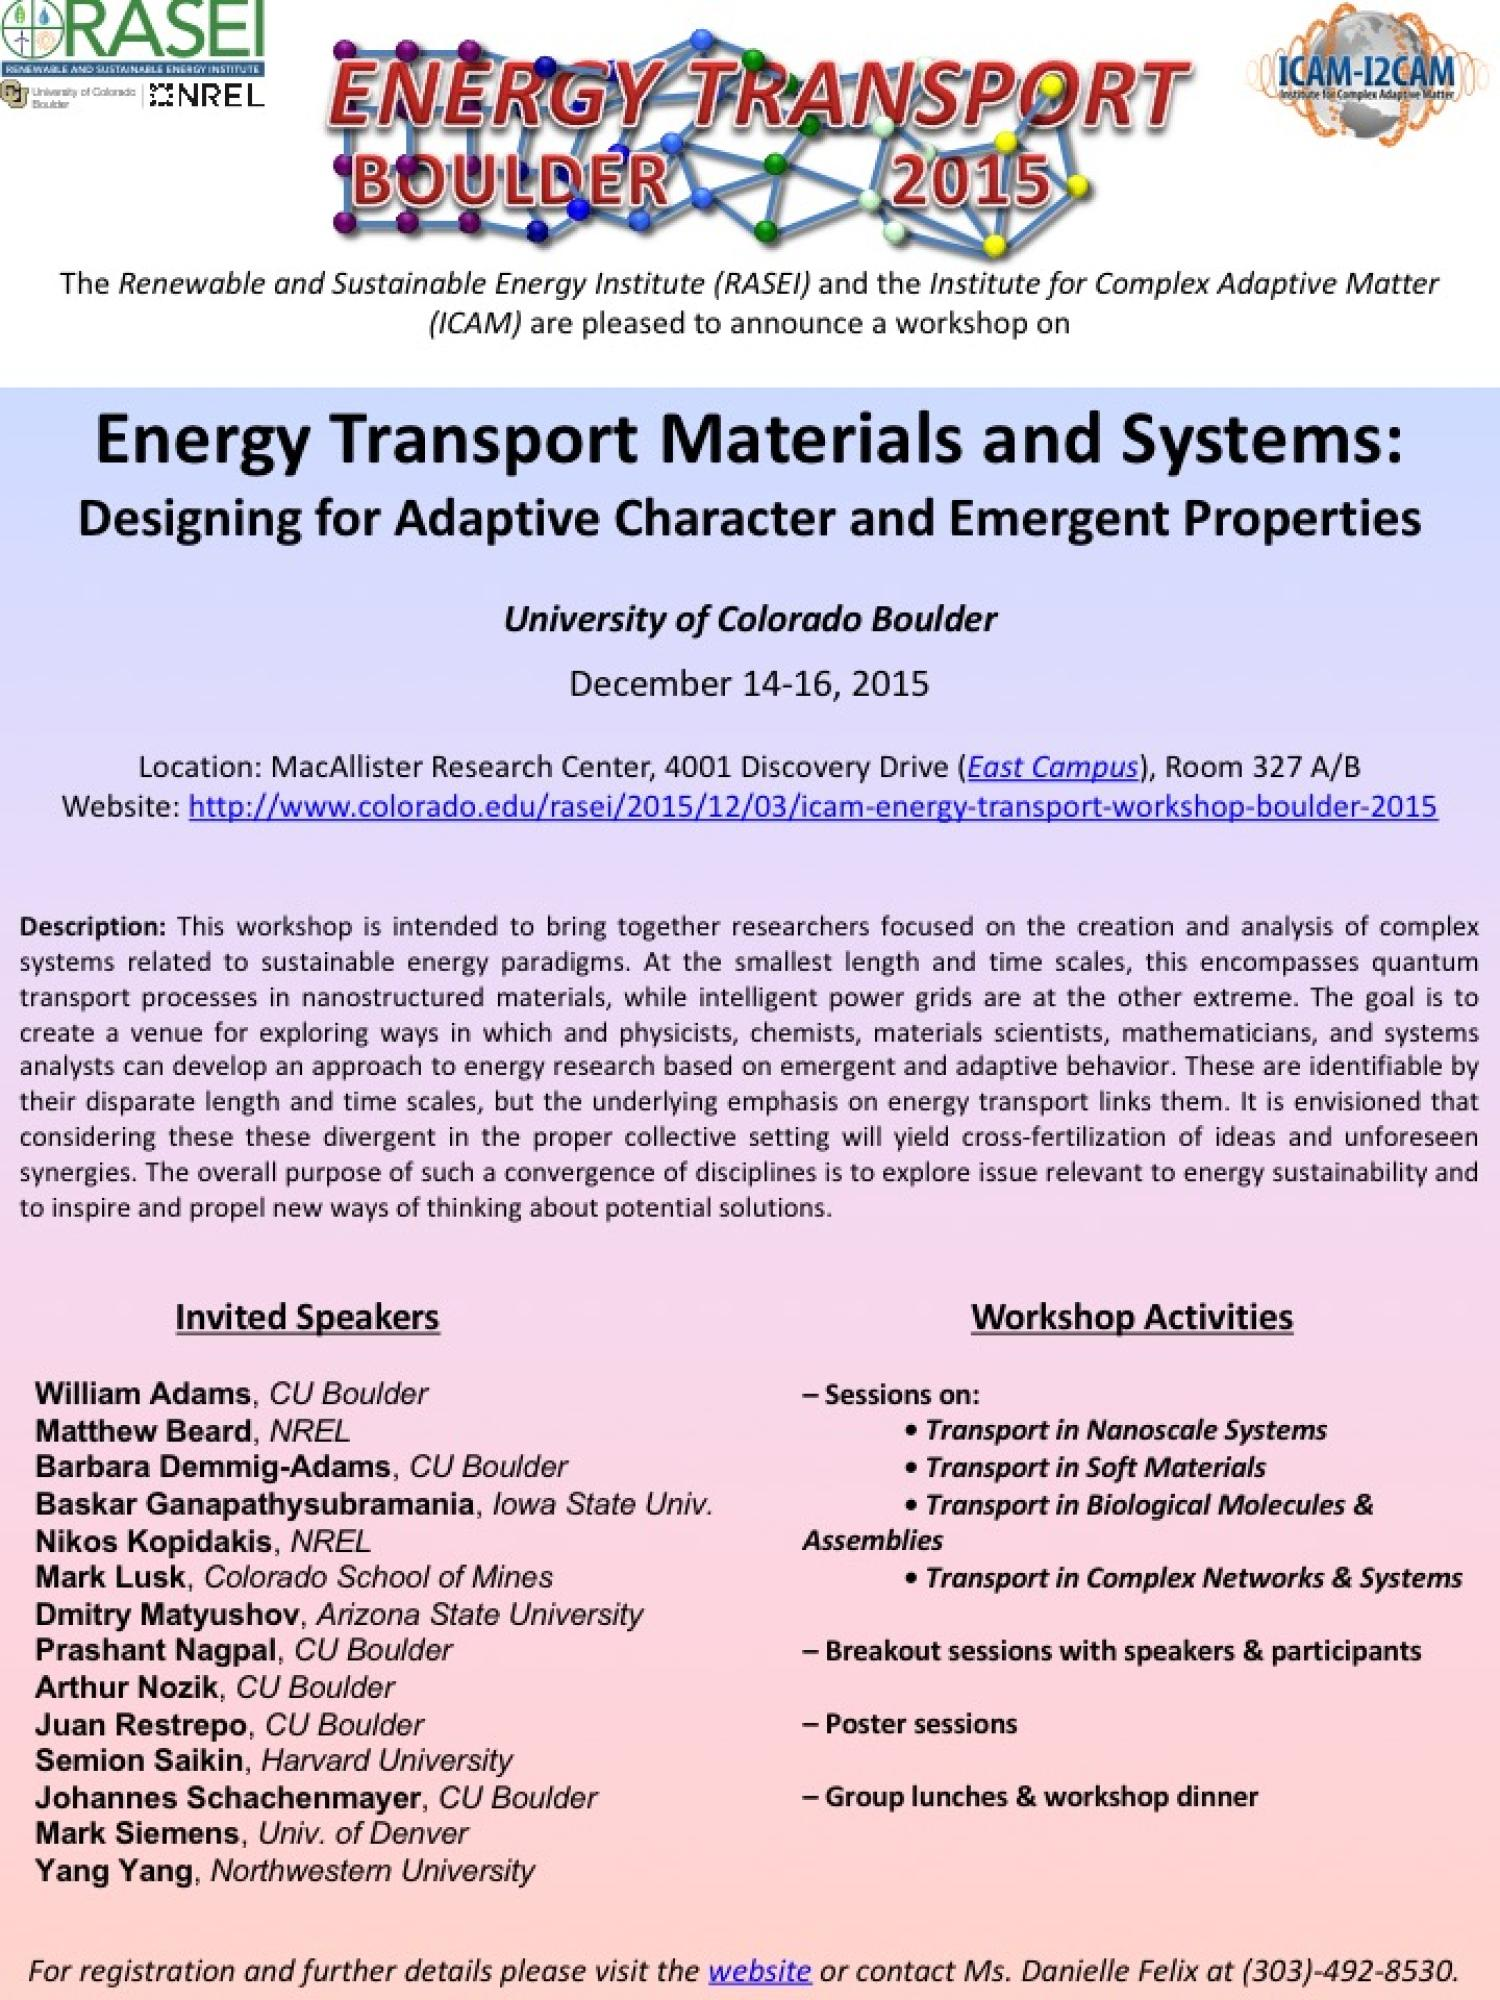 Energy Transport Flyer